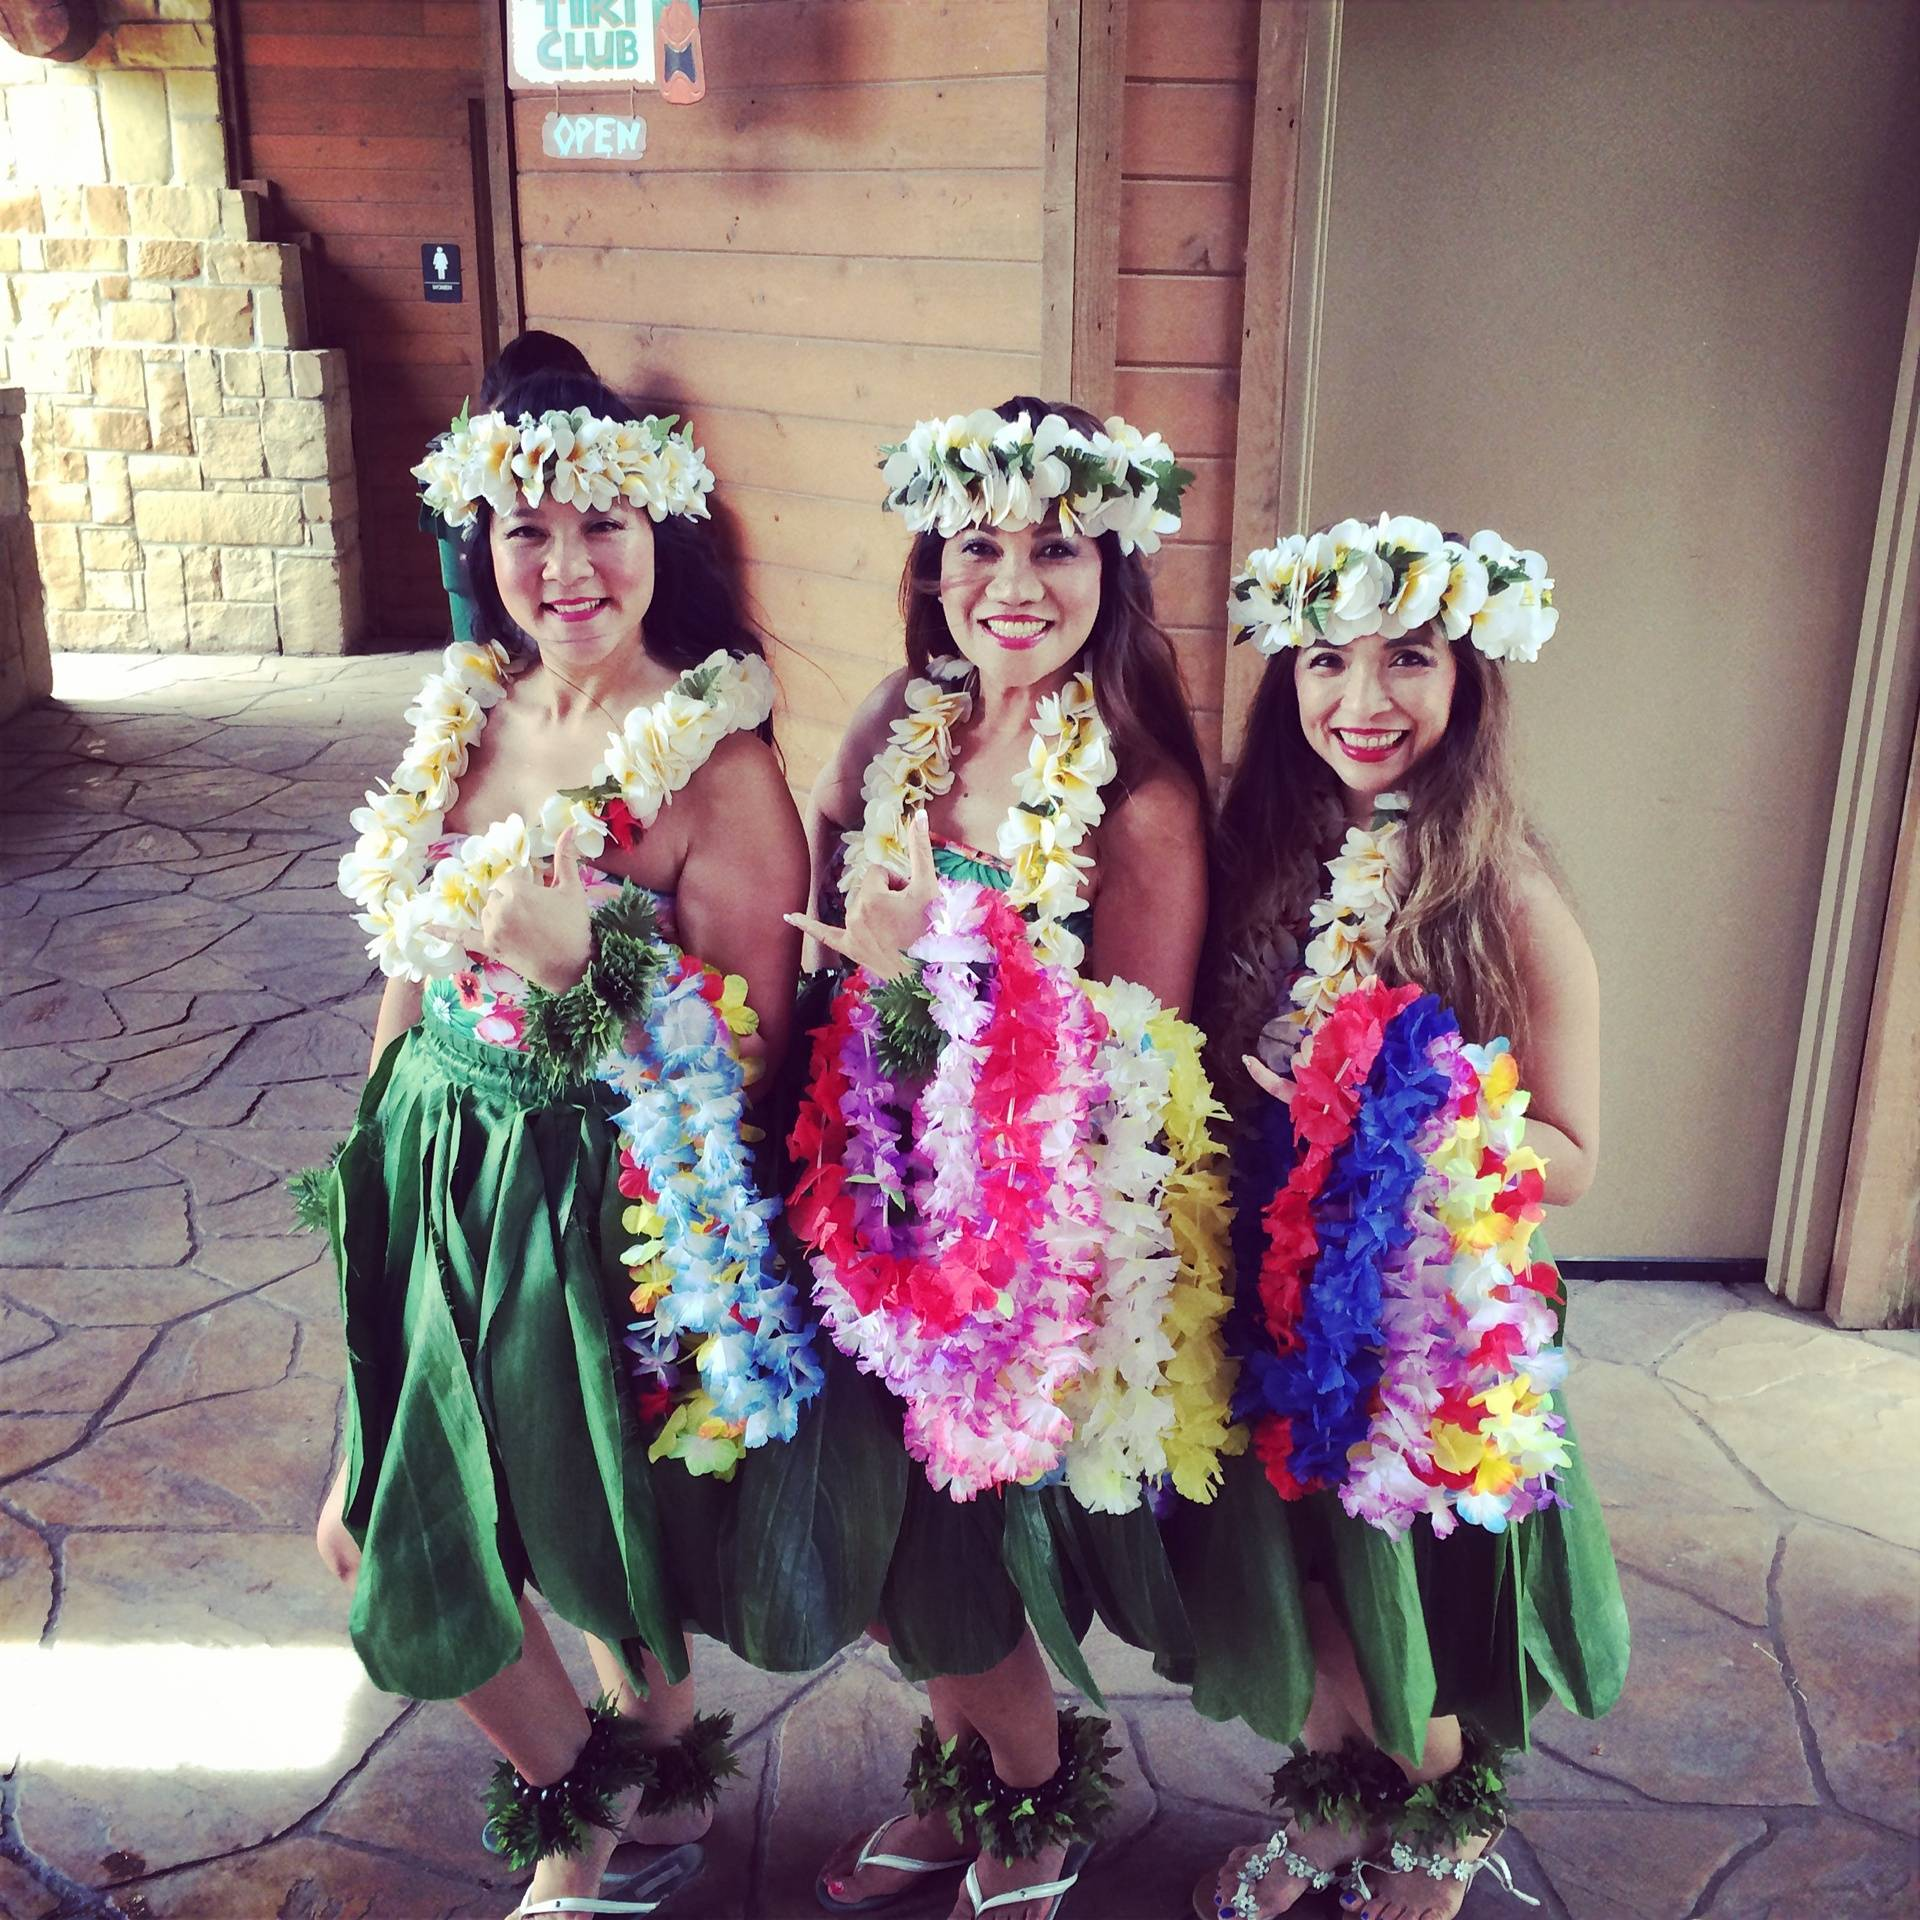 Meet and lei greeting